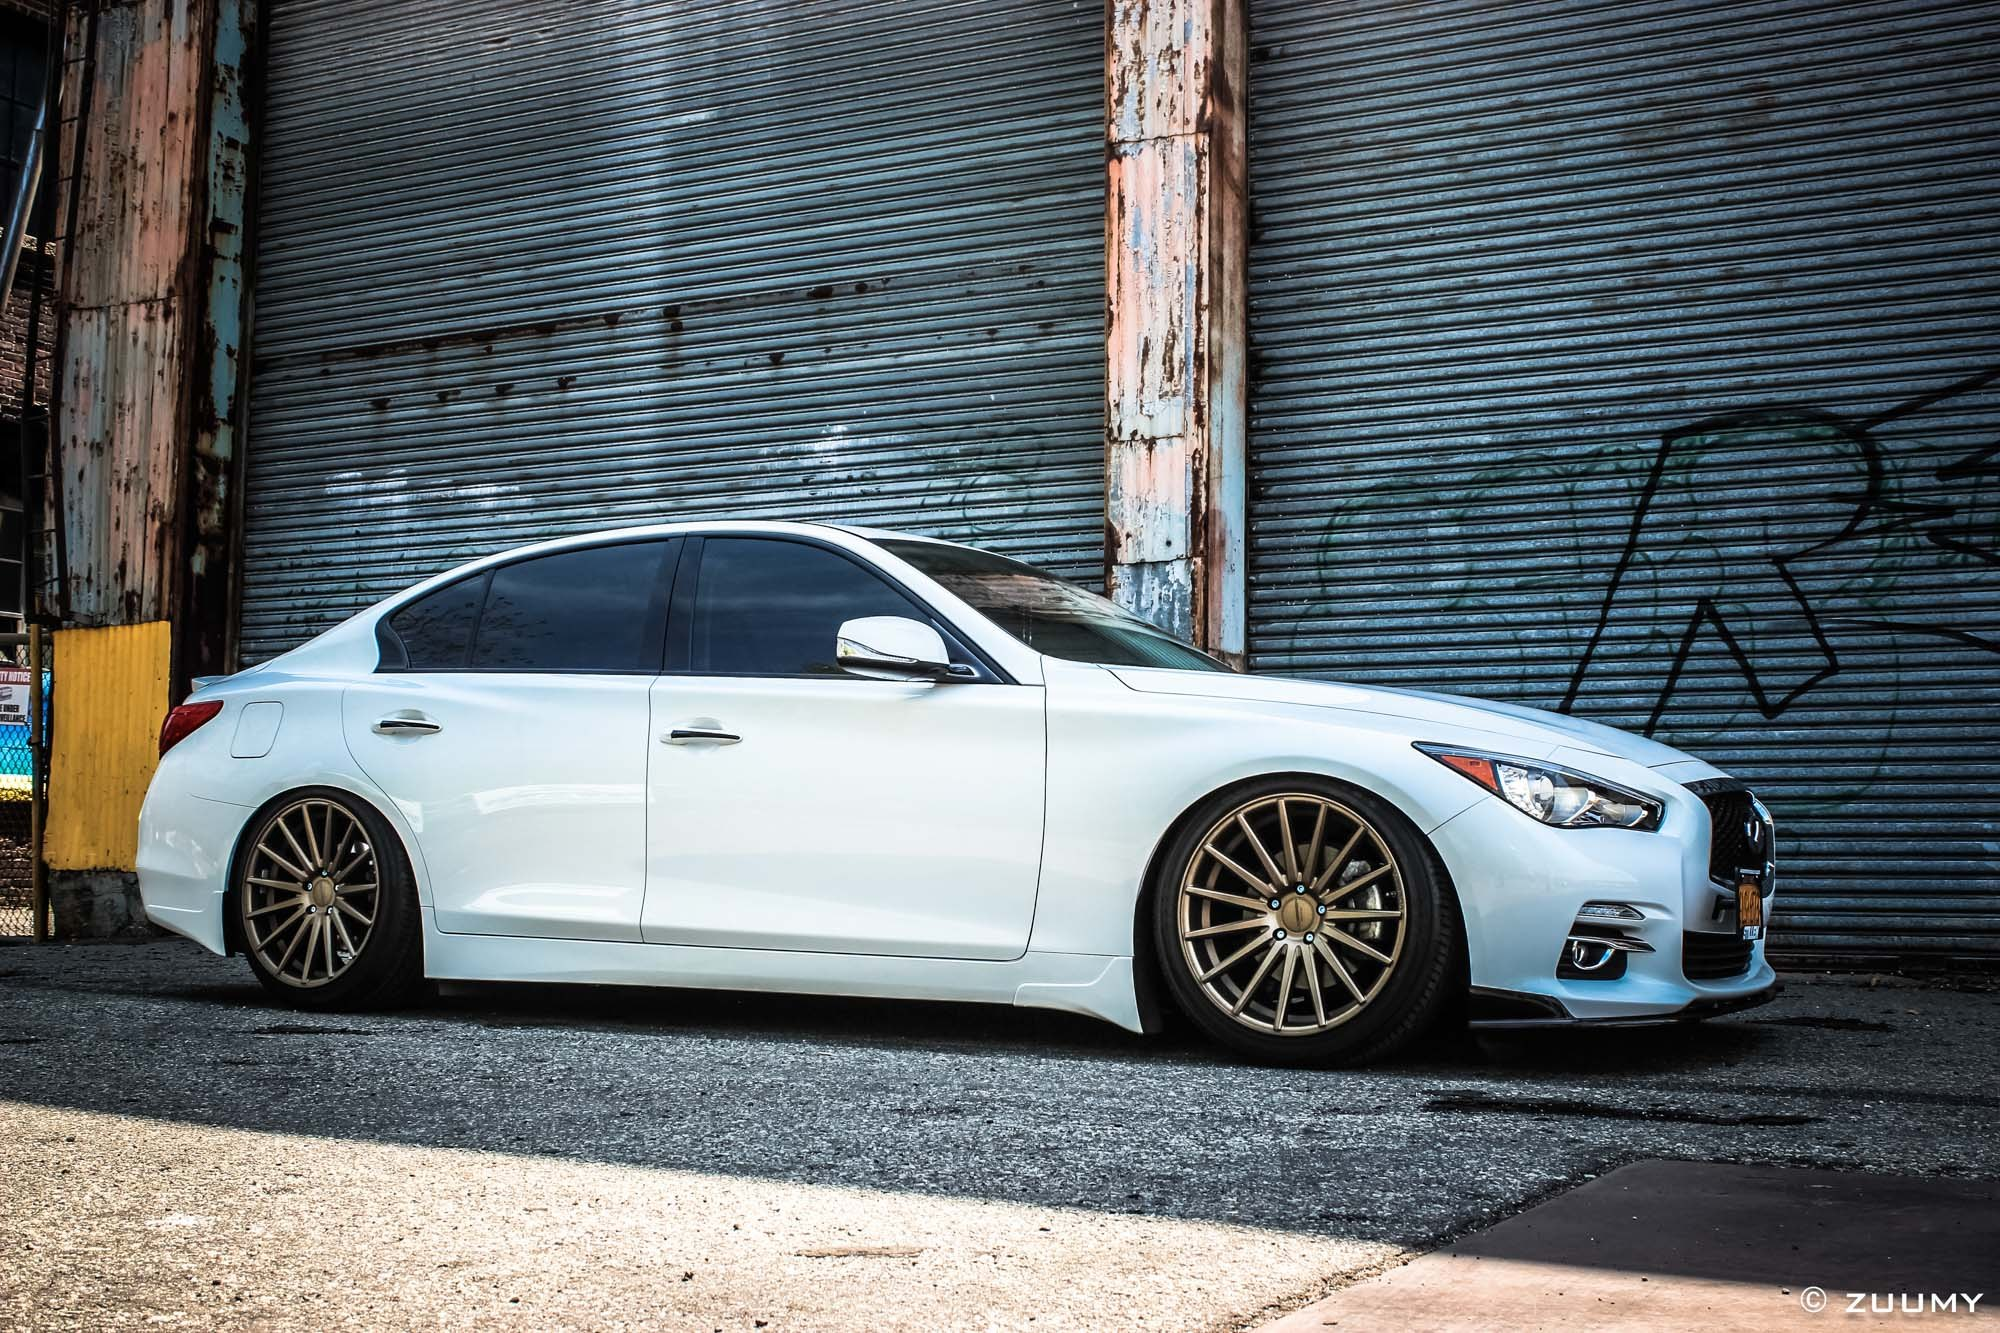 The Exquisite Car Enthusiast s Choice Custom White Lowered Infiniti